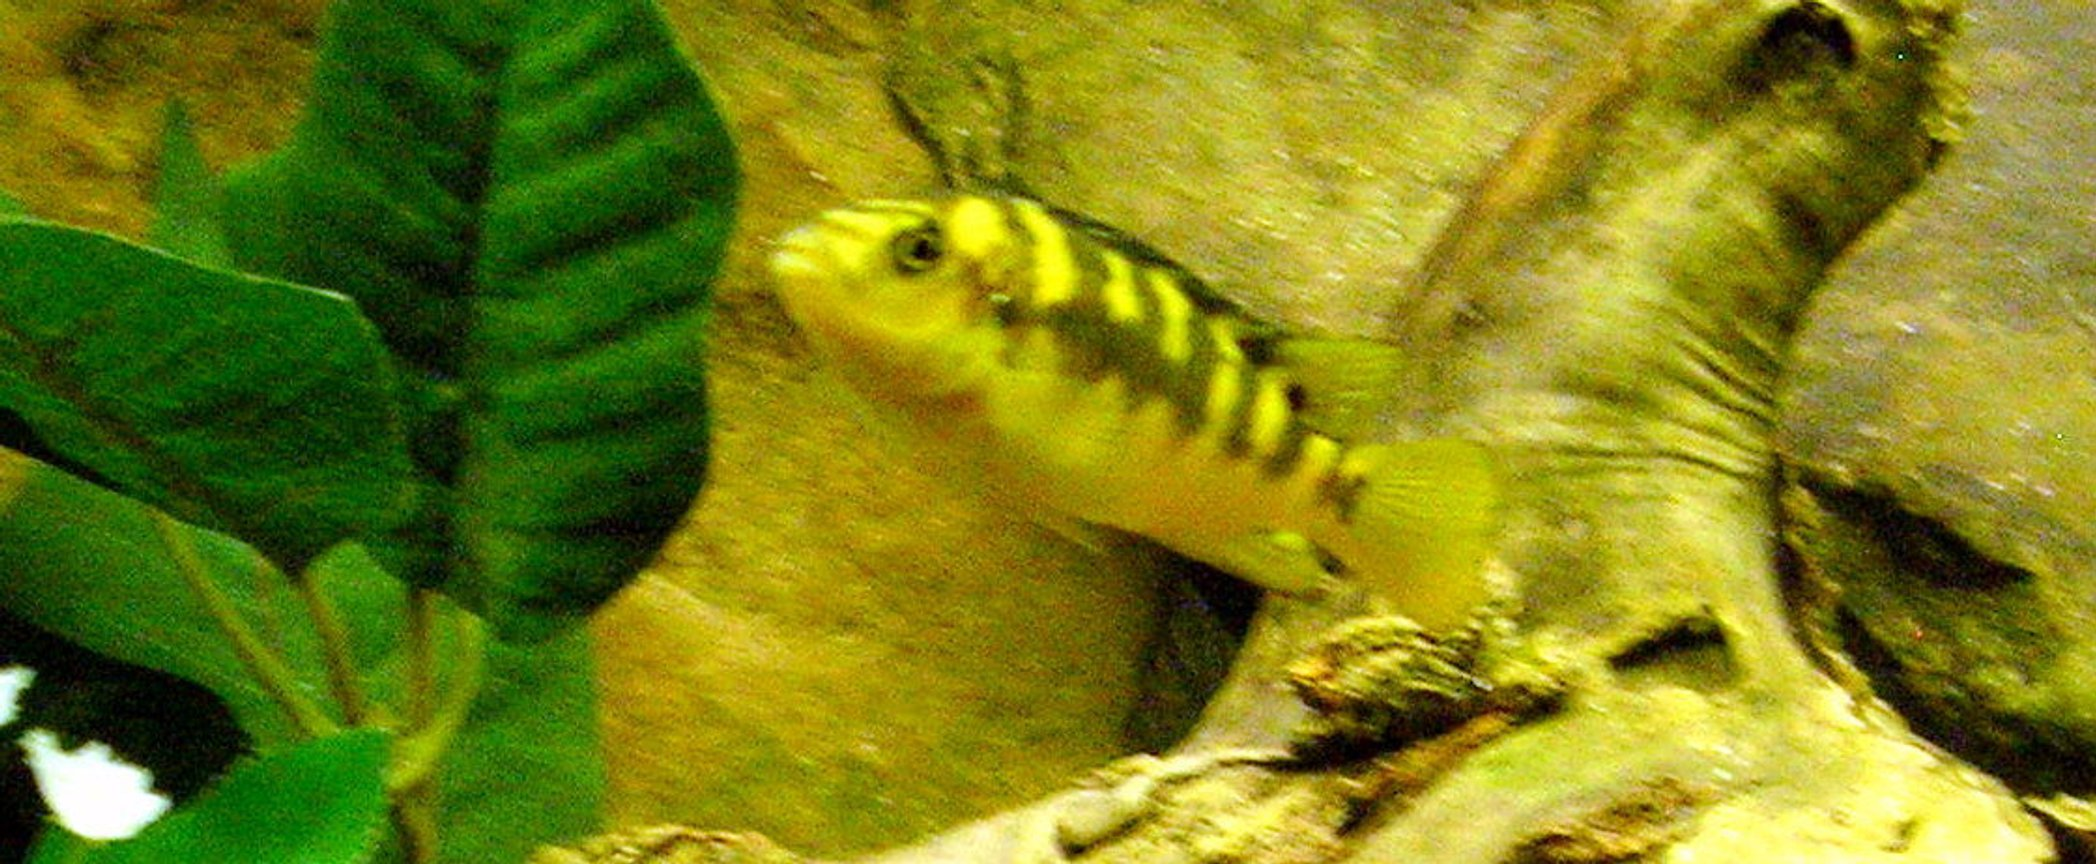 freshwater fish - pseudotropheus crabro - bumblebee cichlid stocking in 29 gallons tank - Bumblebee cichlid